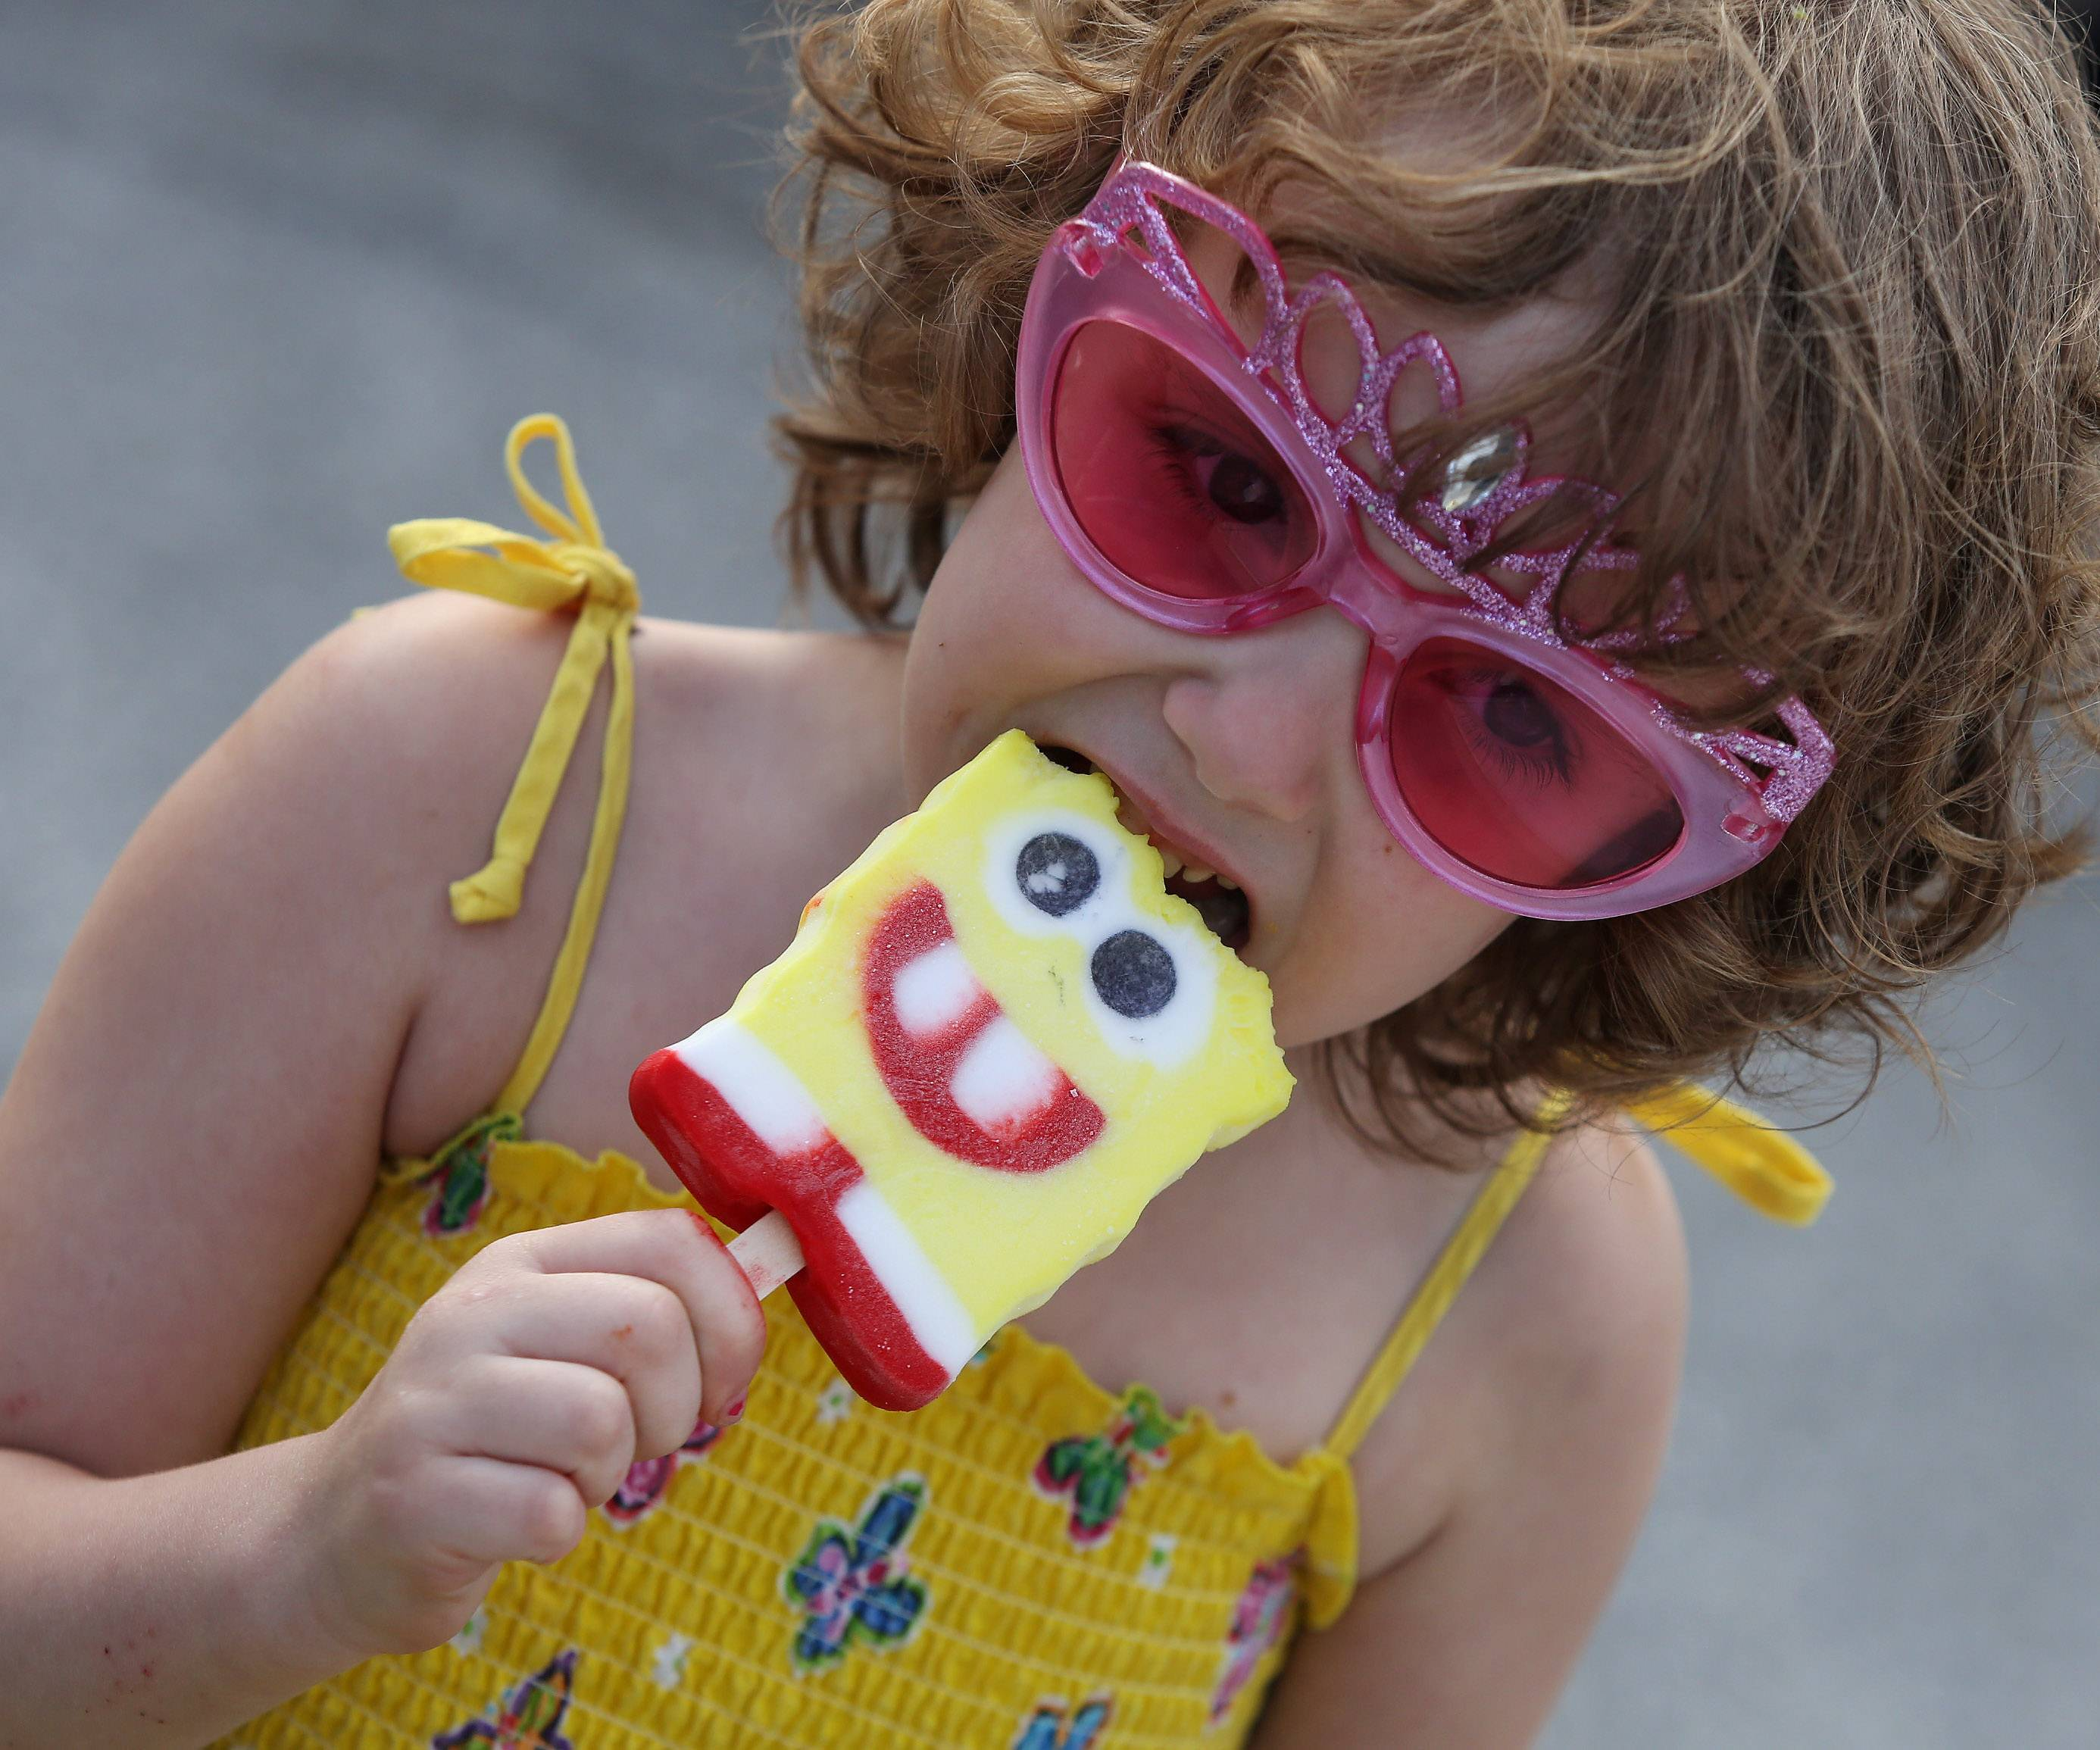 Six-year-old Bailey Powell enjoys a SpongeBob frozen treat during the first day of the Libertyville Days Festival on Thursday. The event featured food, music, the carnival and the Miss Libertyville pageant.